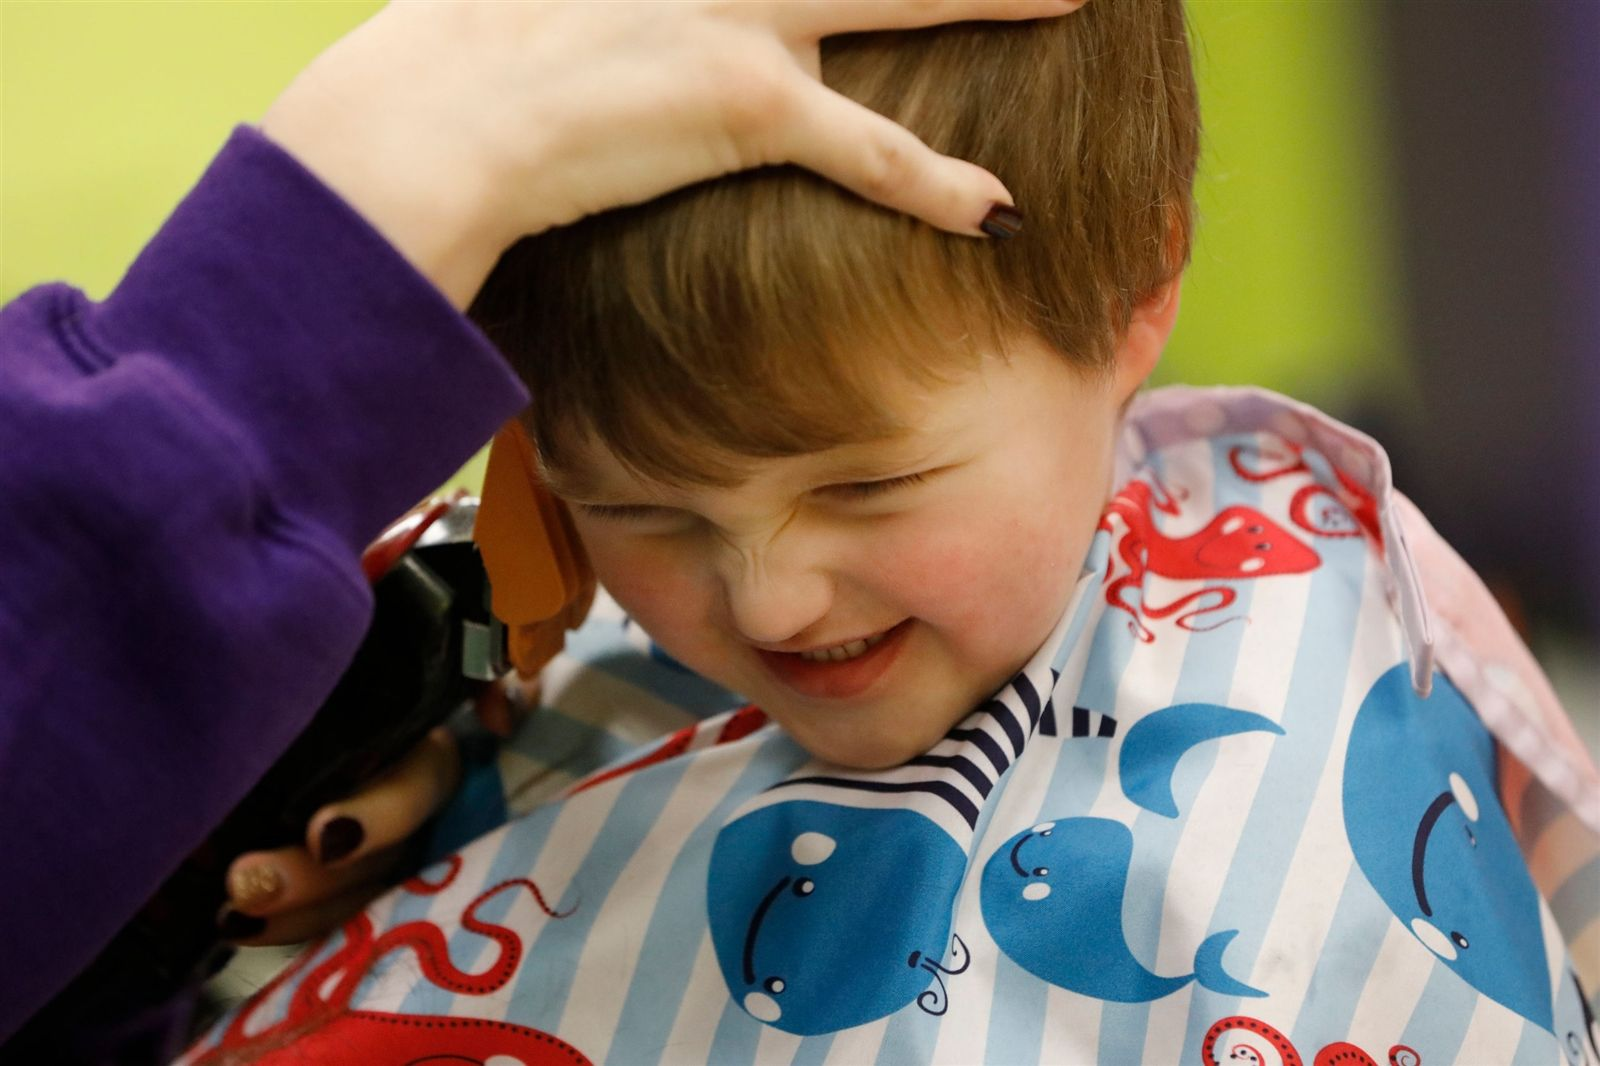 """Reid Baldwin, 3, of Lockport, reacts to the """"tickle"""" from the clippers as he gets a trim at Shear Madness in Orchard Park, which specializes in children's haircuts, Saturday, Feb. 10, 2018."""